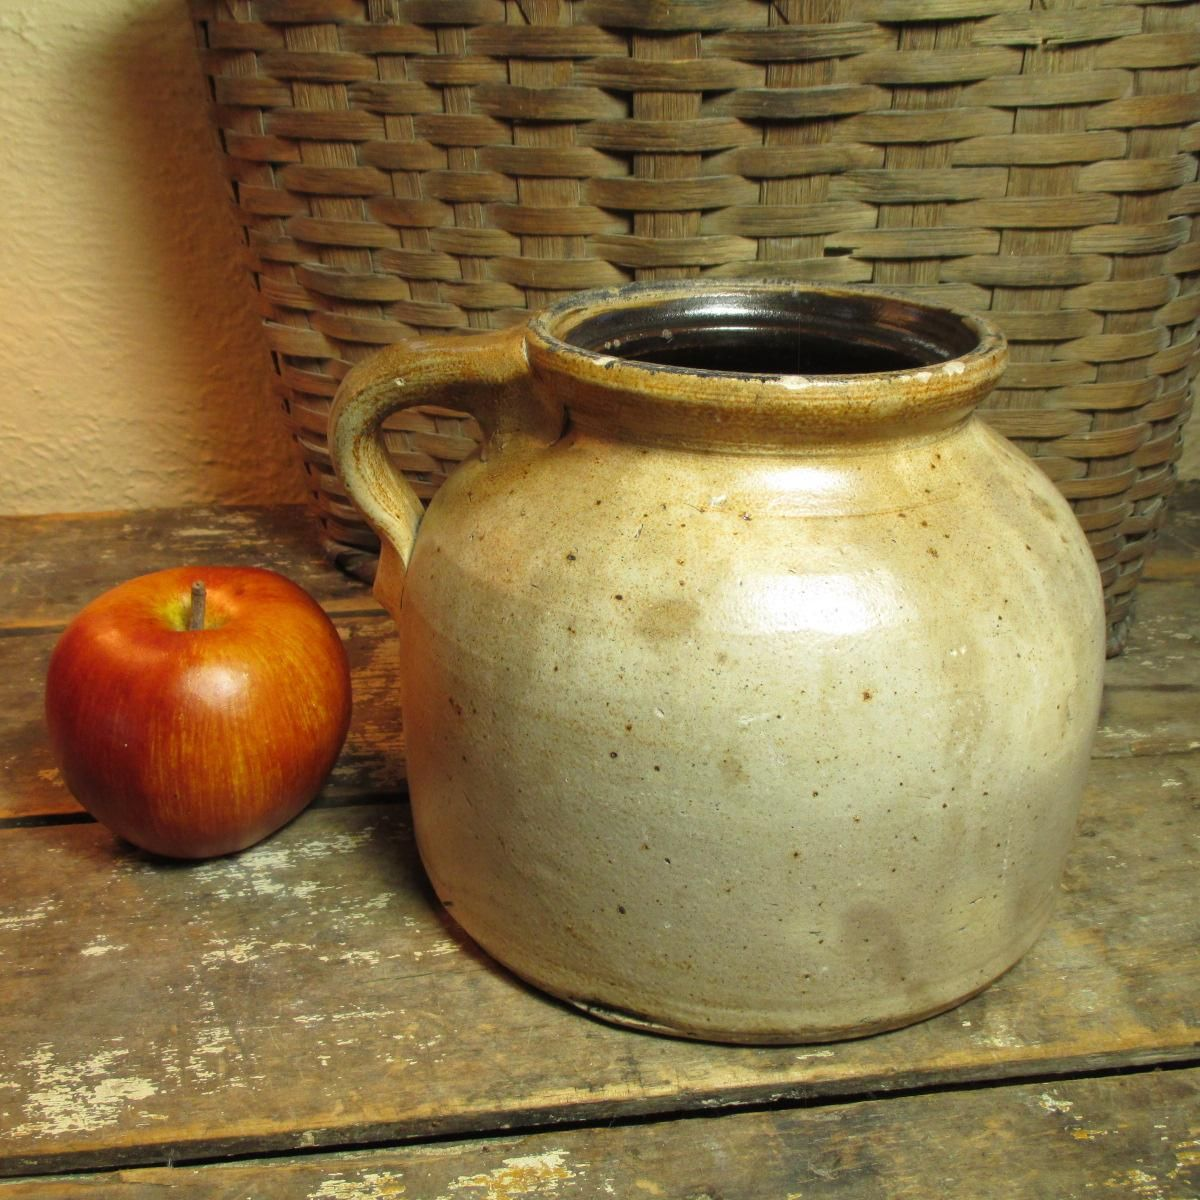 Early Old Primitive Farmhouse Kitchen Squatty Salt Glaze Stoneware Jug #HannahsHouseAntiques #Primitives http://www.rubylane.com/item/497177-9448/Early-Primitive-Farmhouse-Kitchen-Squatty-Salt